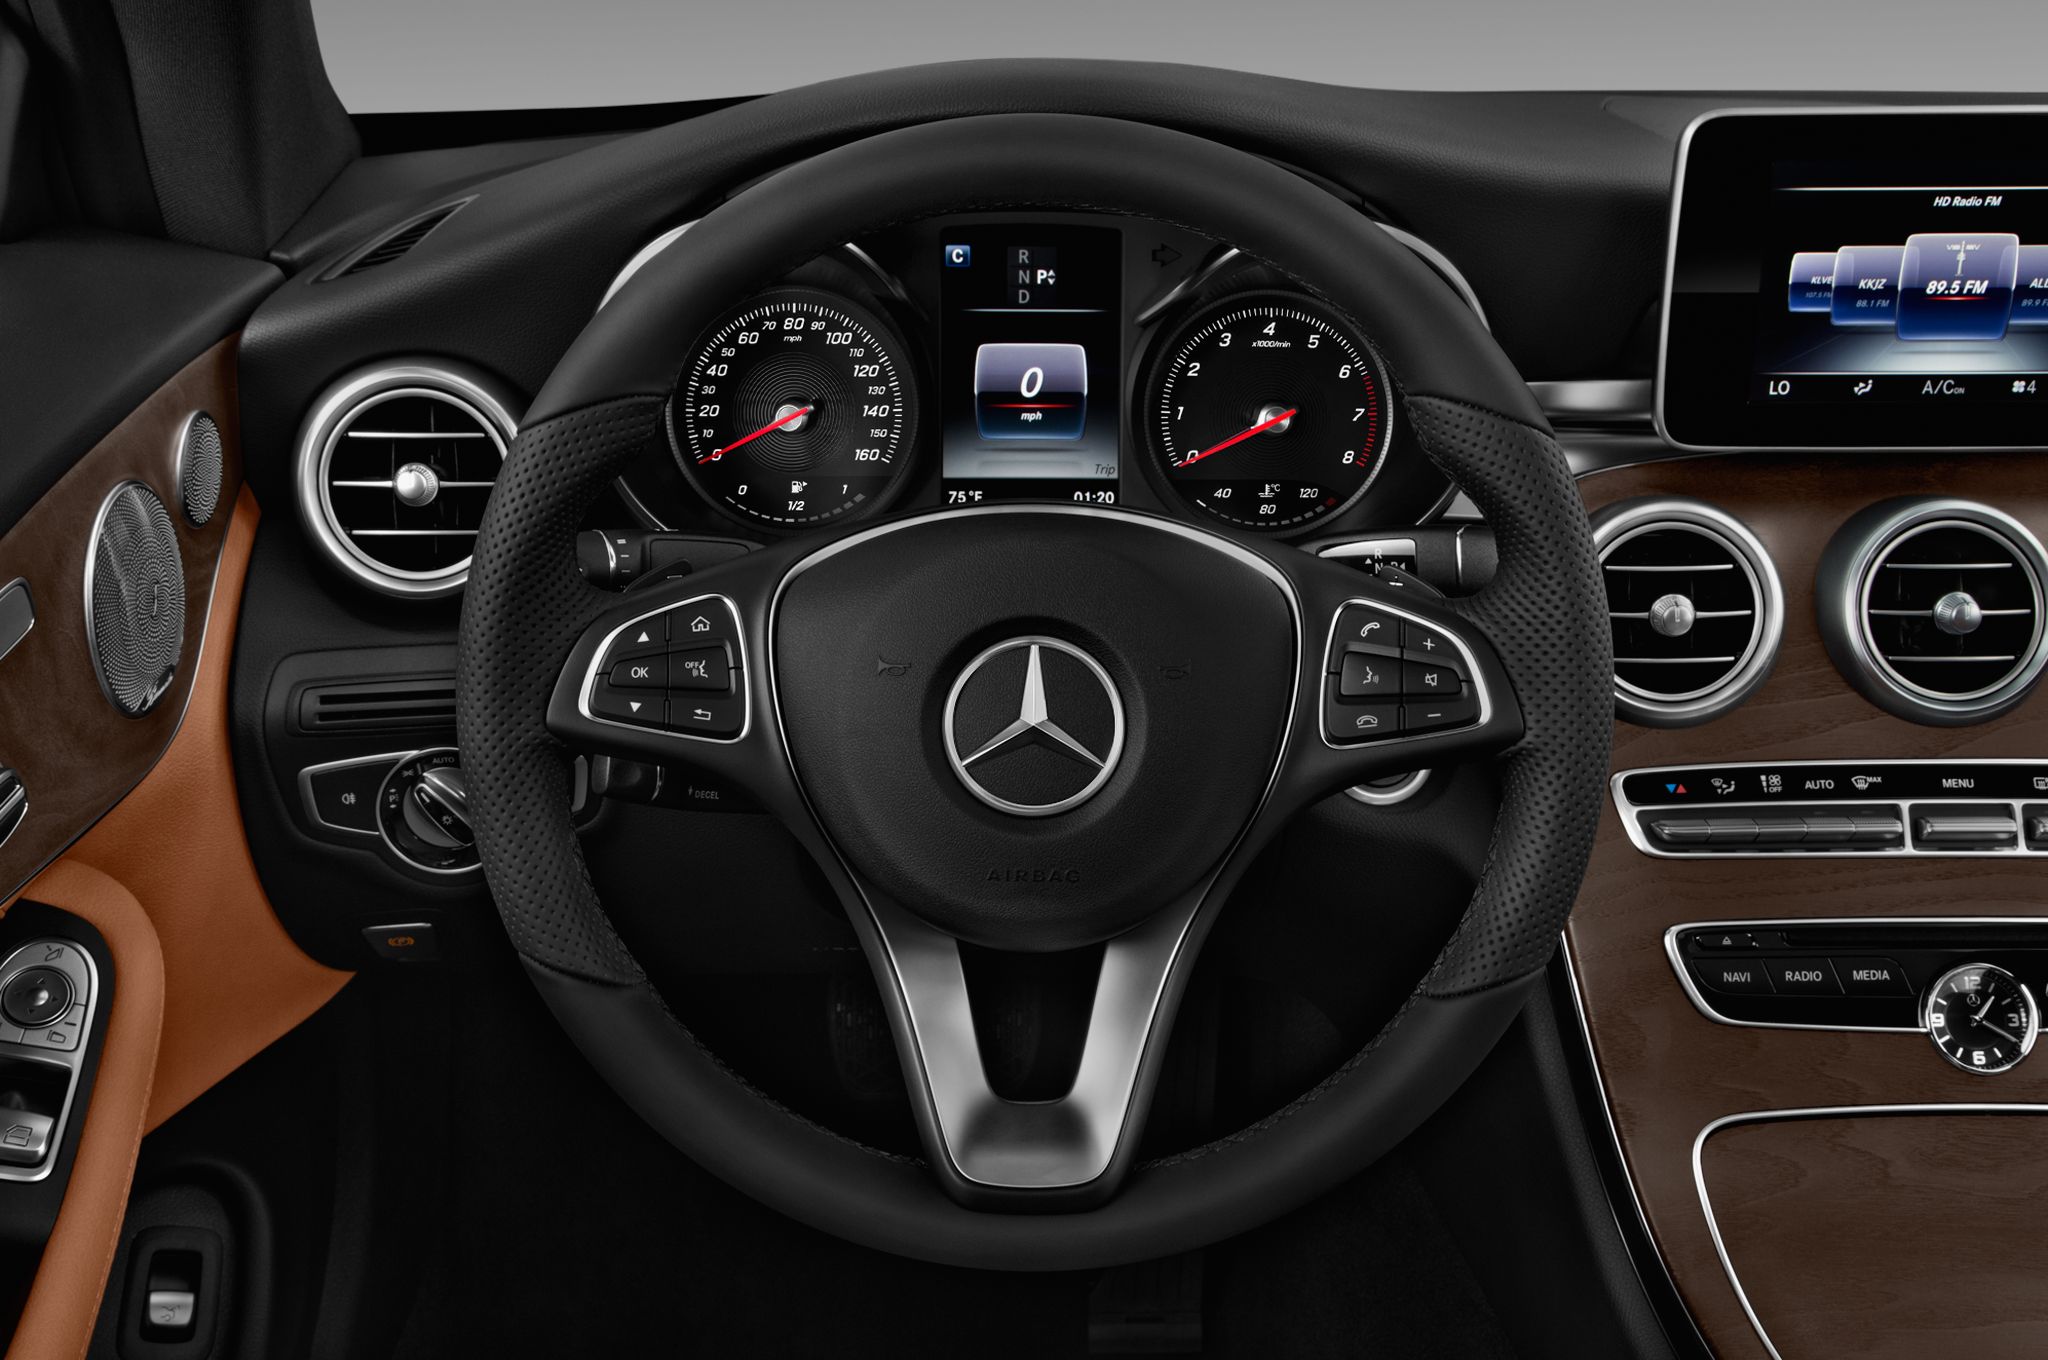 http://st.automobilemag.com/uploads/sites/10/2016/06/2017-mercedes-benz-c-class-c300-coupe-steering-wheel.png